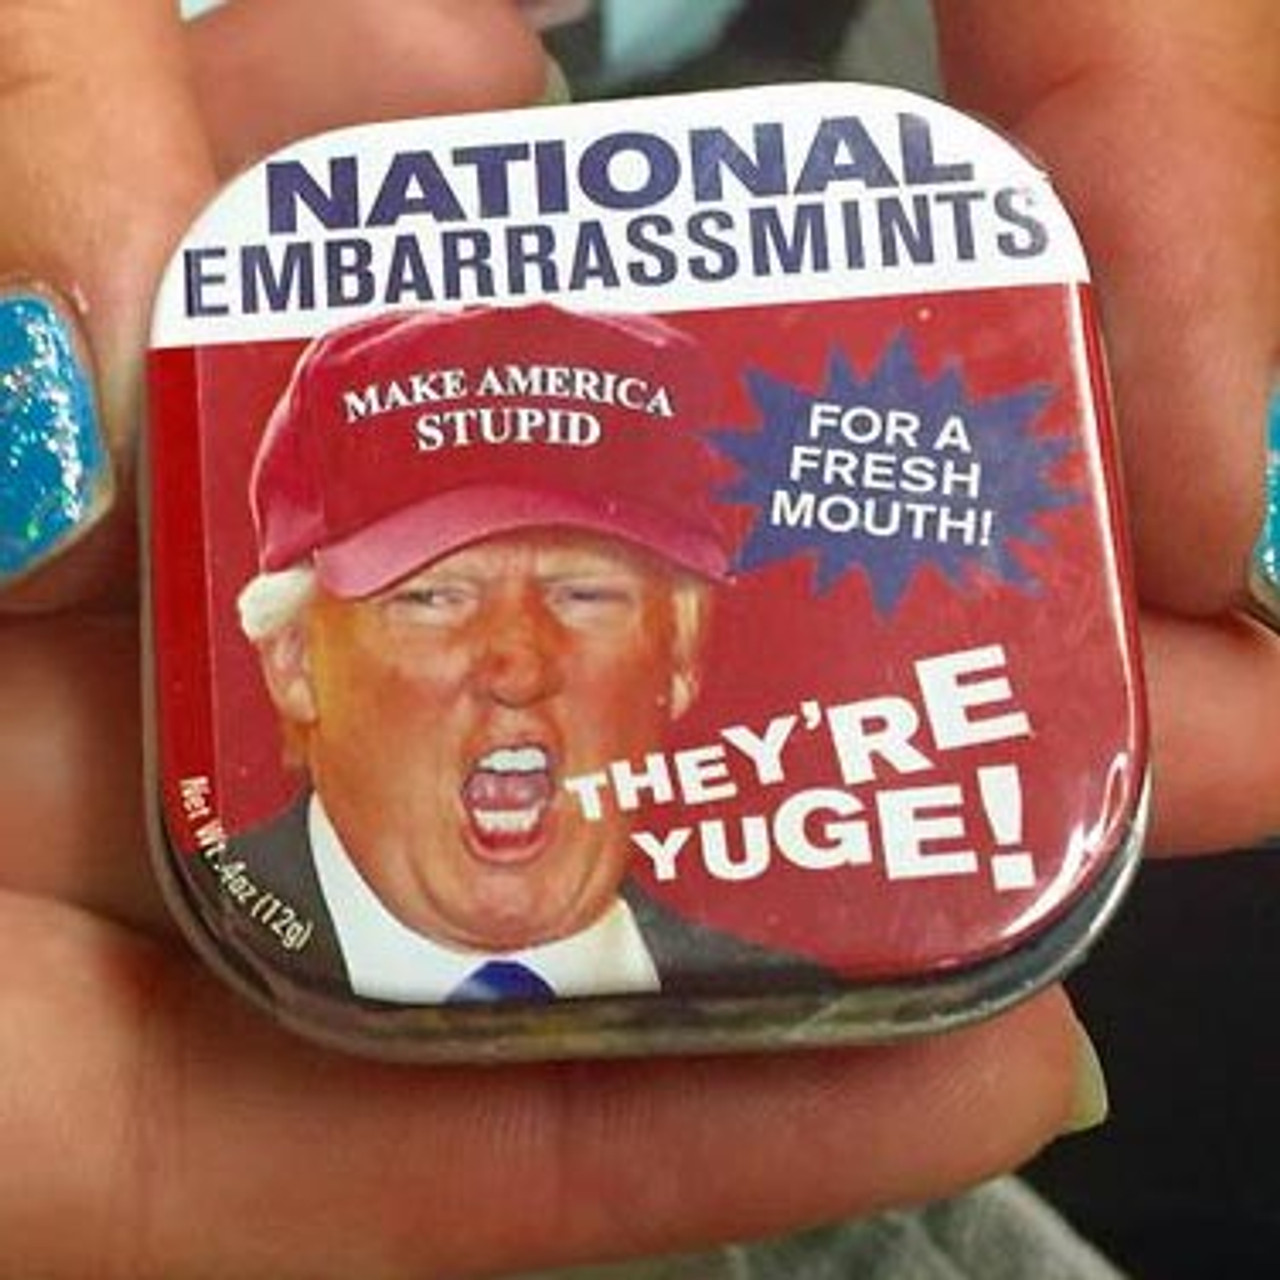 National Embarrassmints